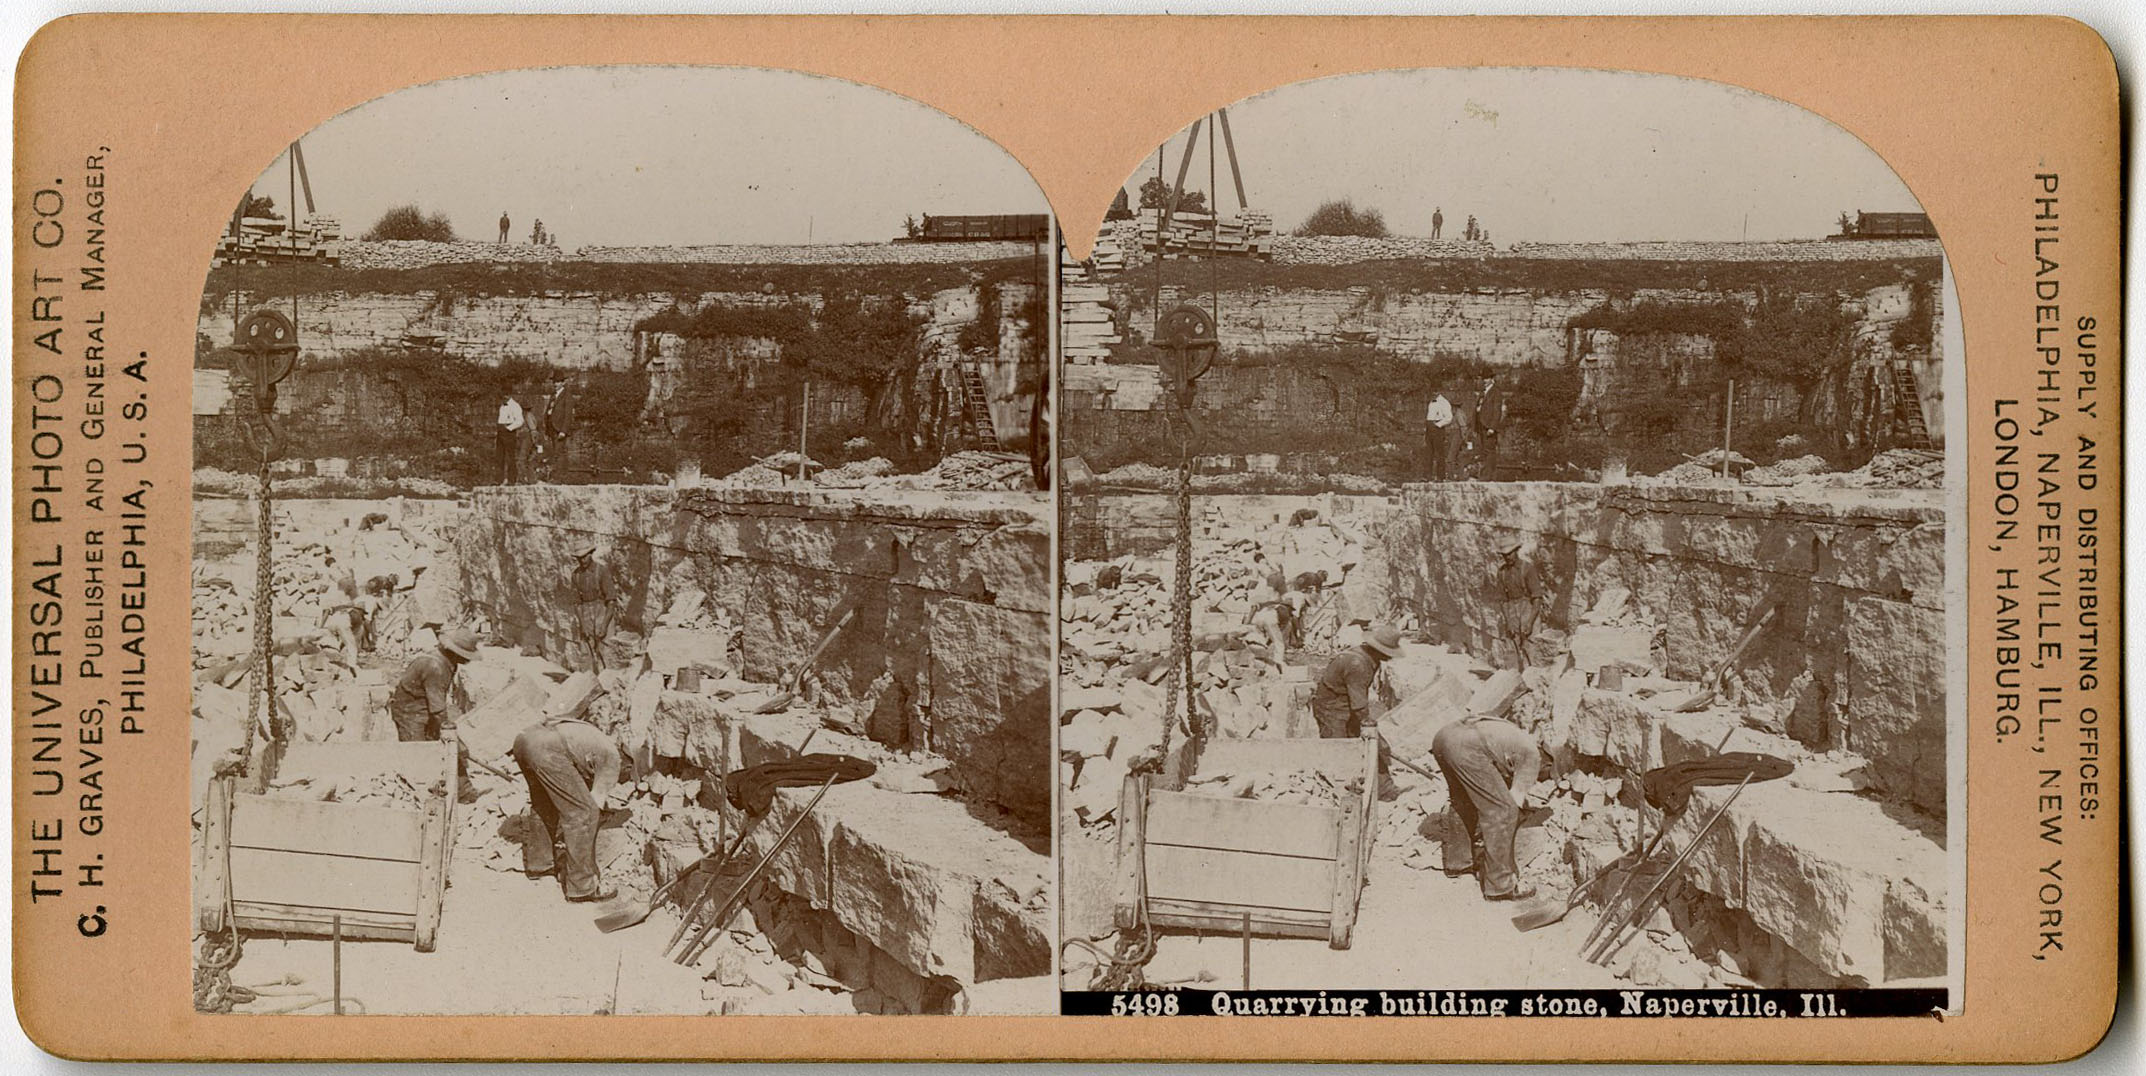 Quarrying Stereoview Card